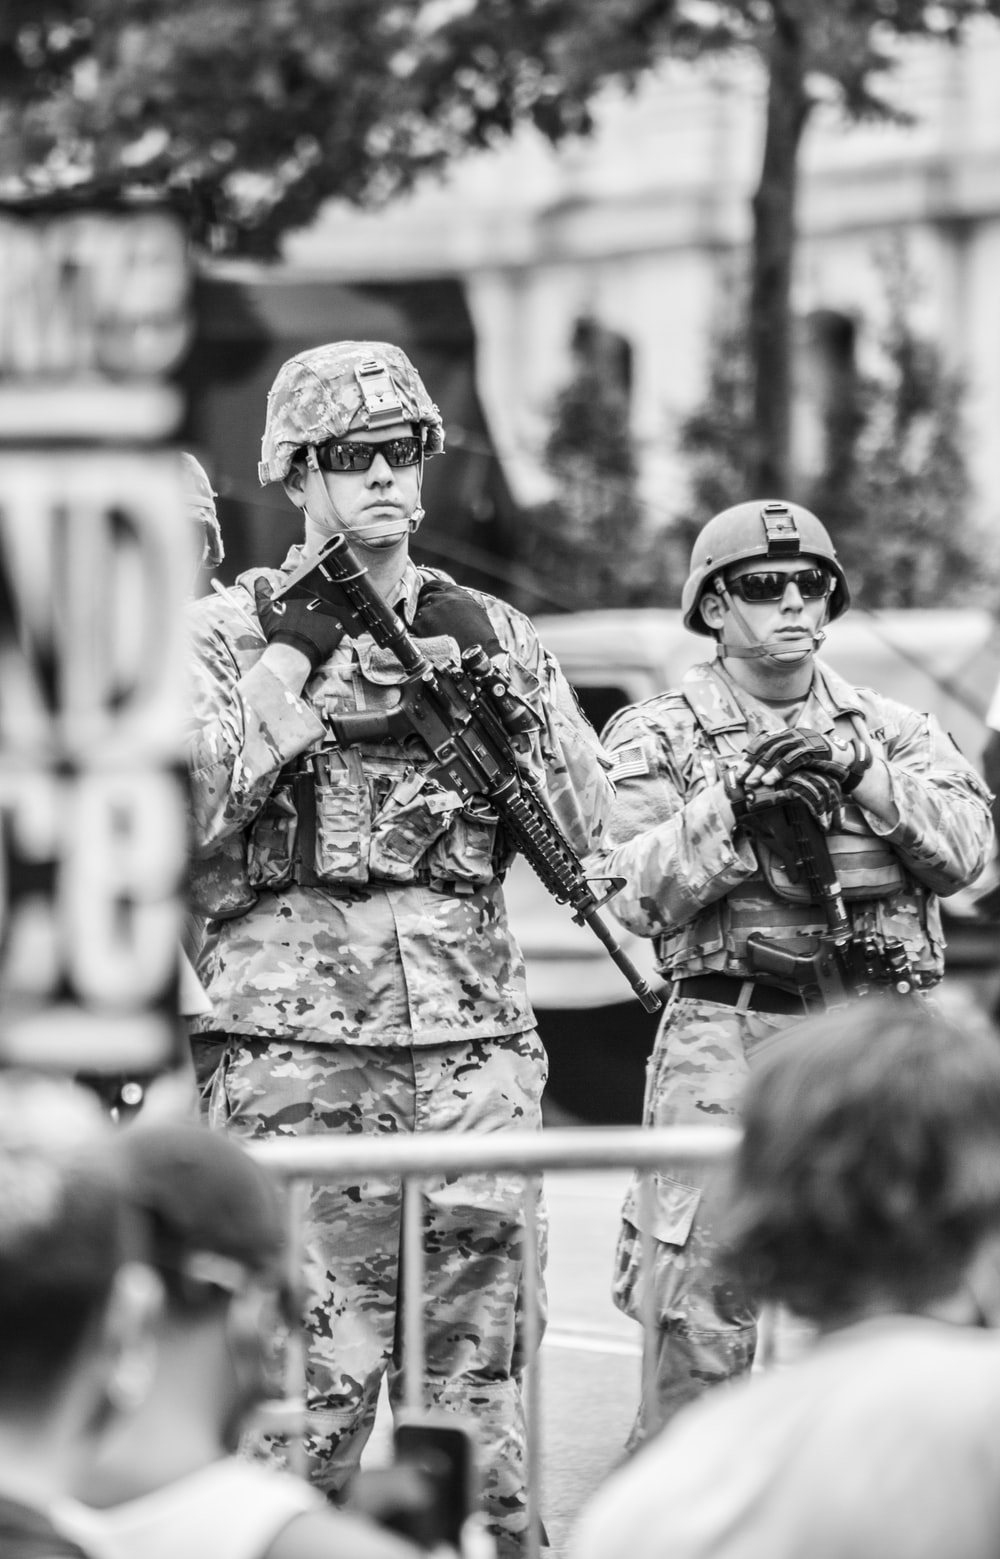 grayscale photo of man in camouflage uniform holding rifle